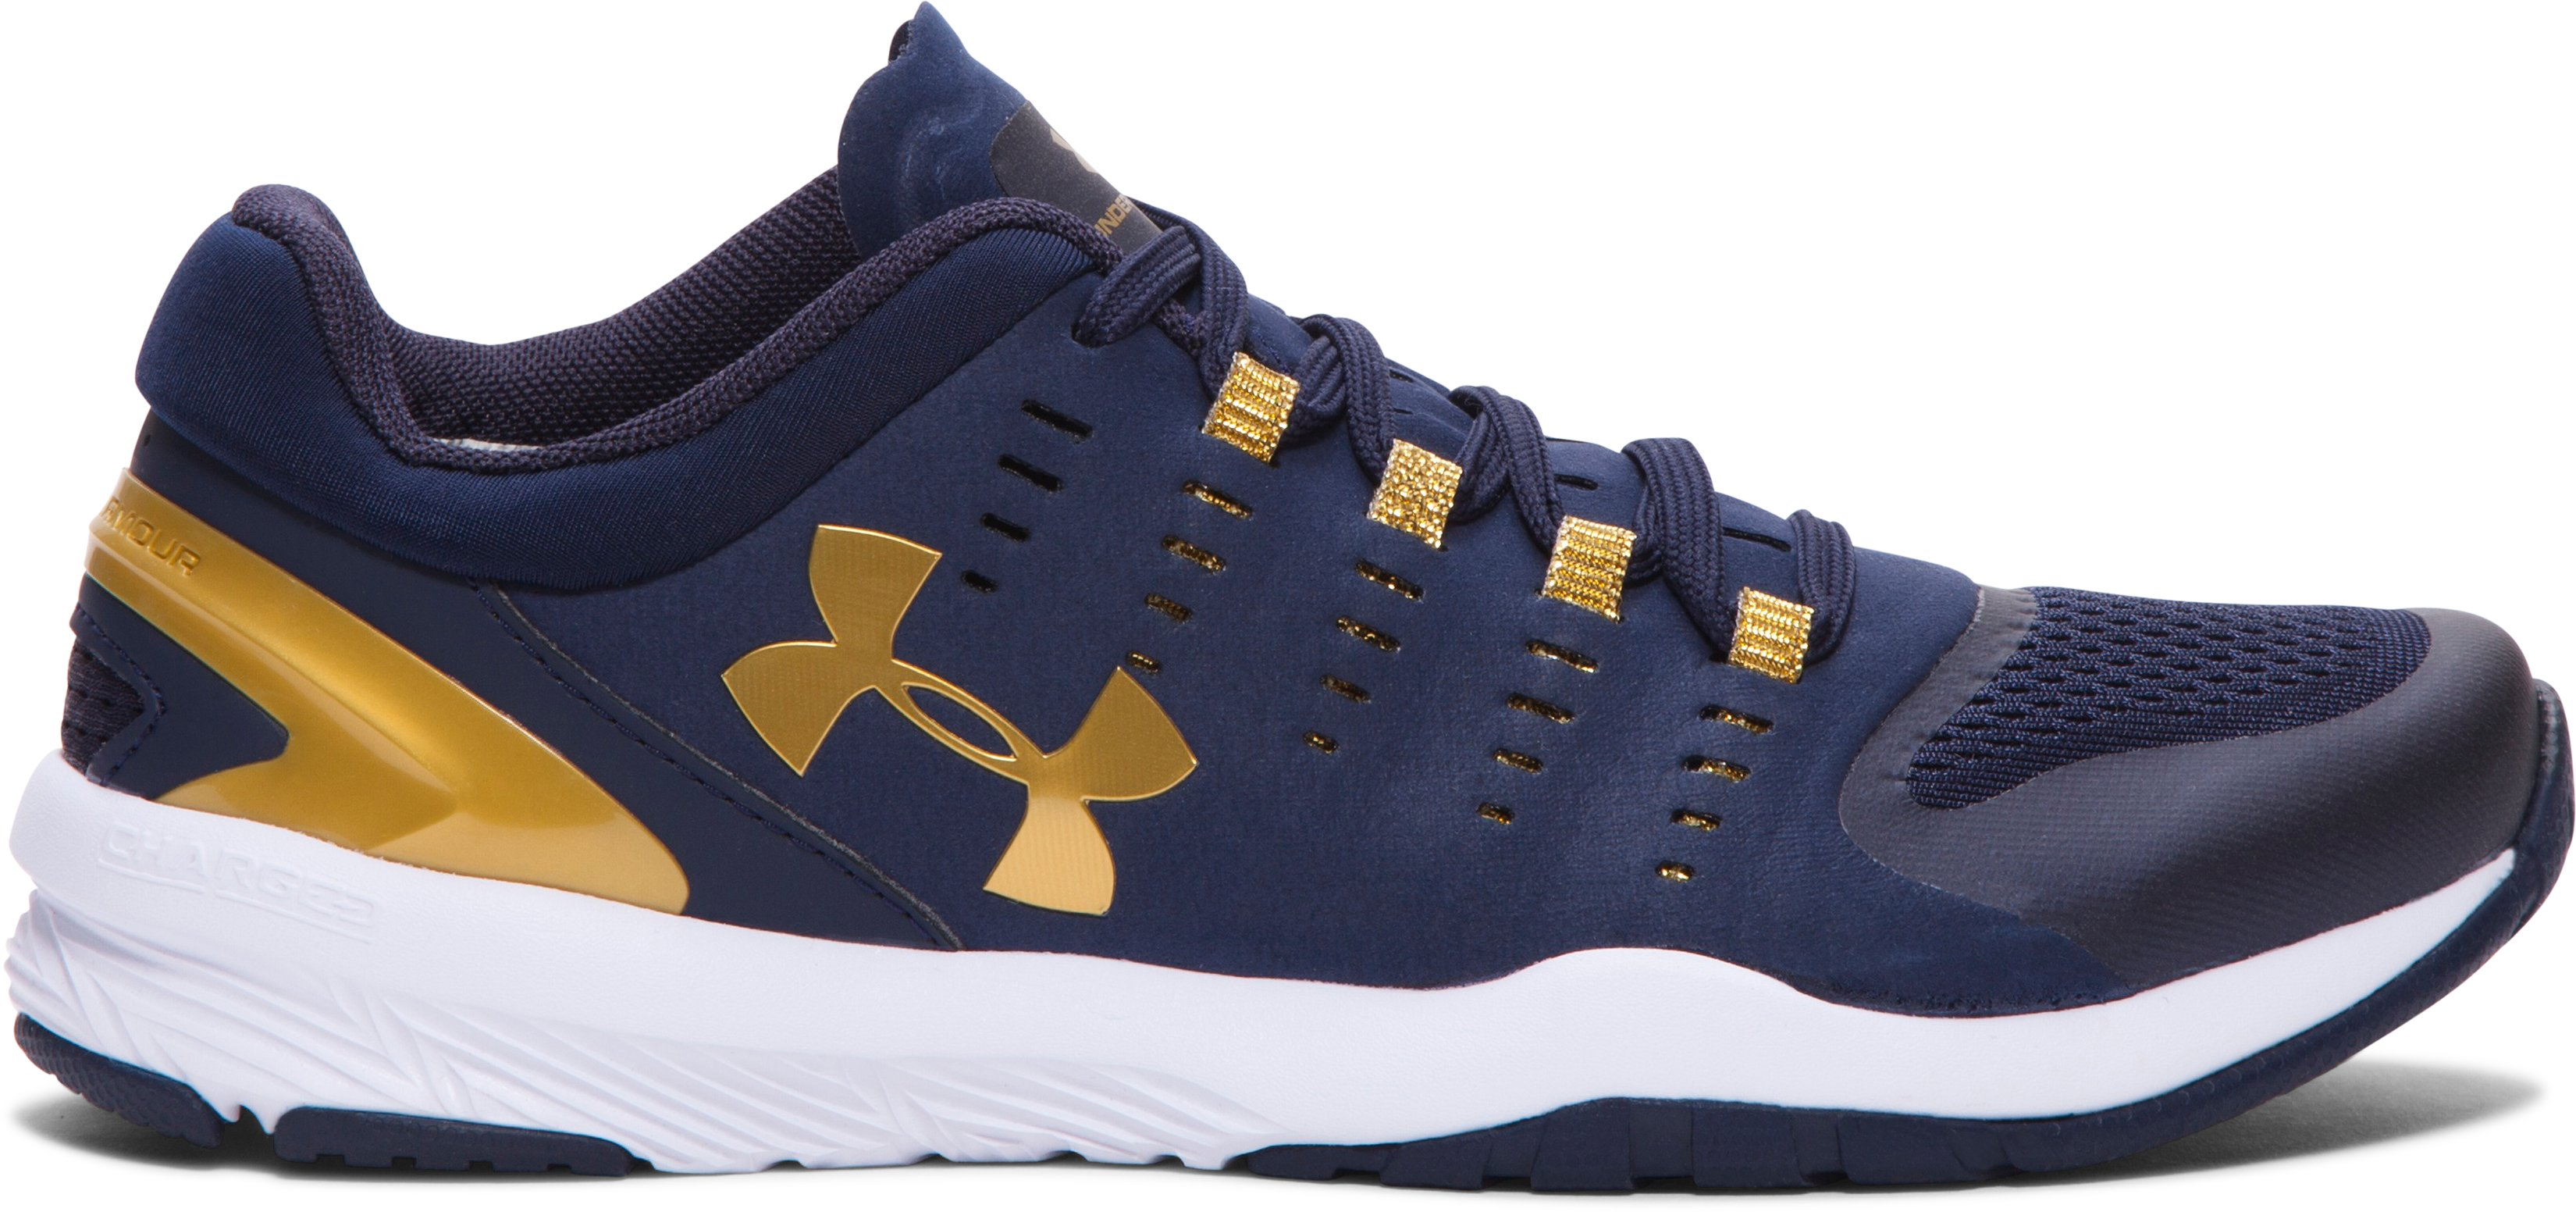 Women's UA Charged Stunner Team Training Shoes, Midnight Navy